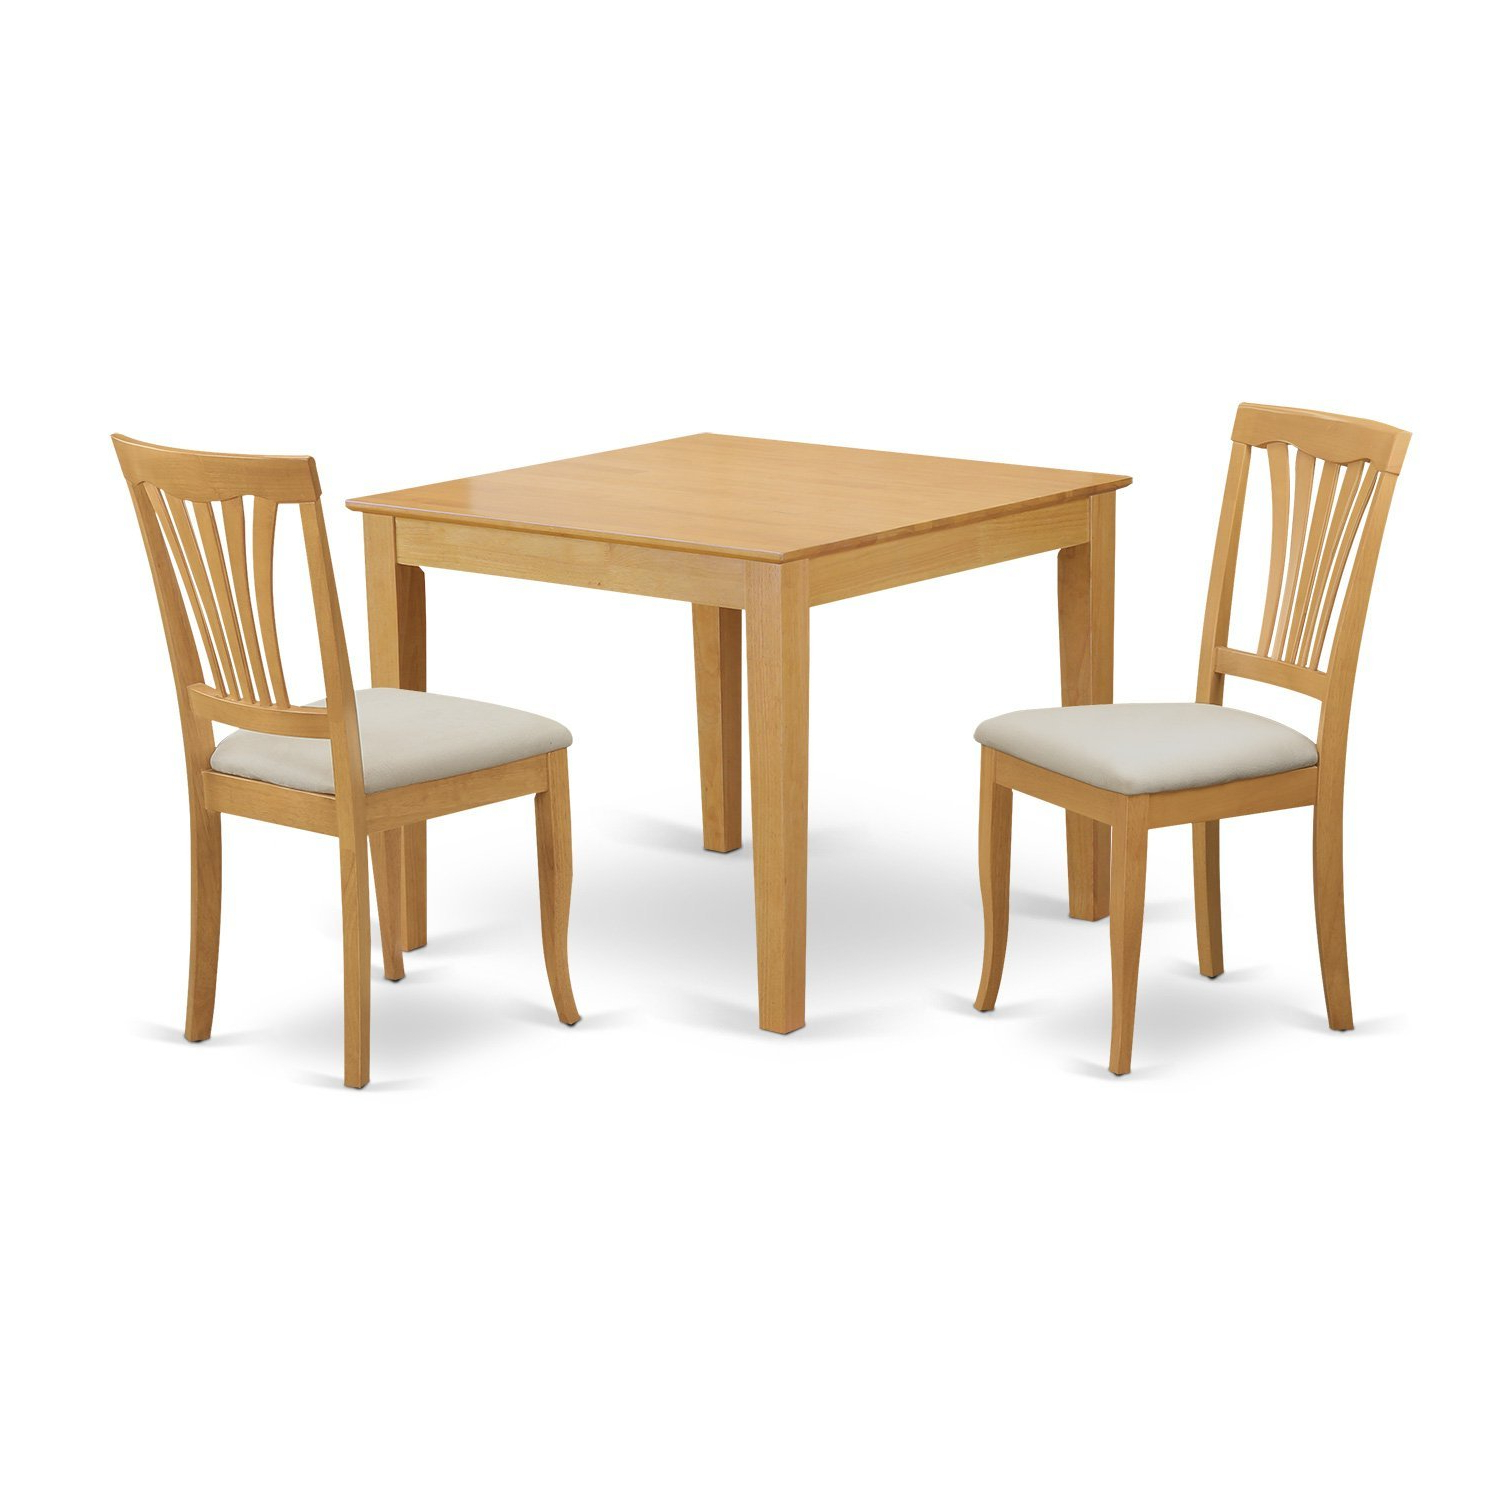 East West Furniture Oxav3-Oak-C 3 Piece Dining Table For Small Spaces And 2  Chairs Set intended for Most Popular 3 Pieces Dining Tables And Chair Set